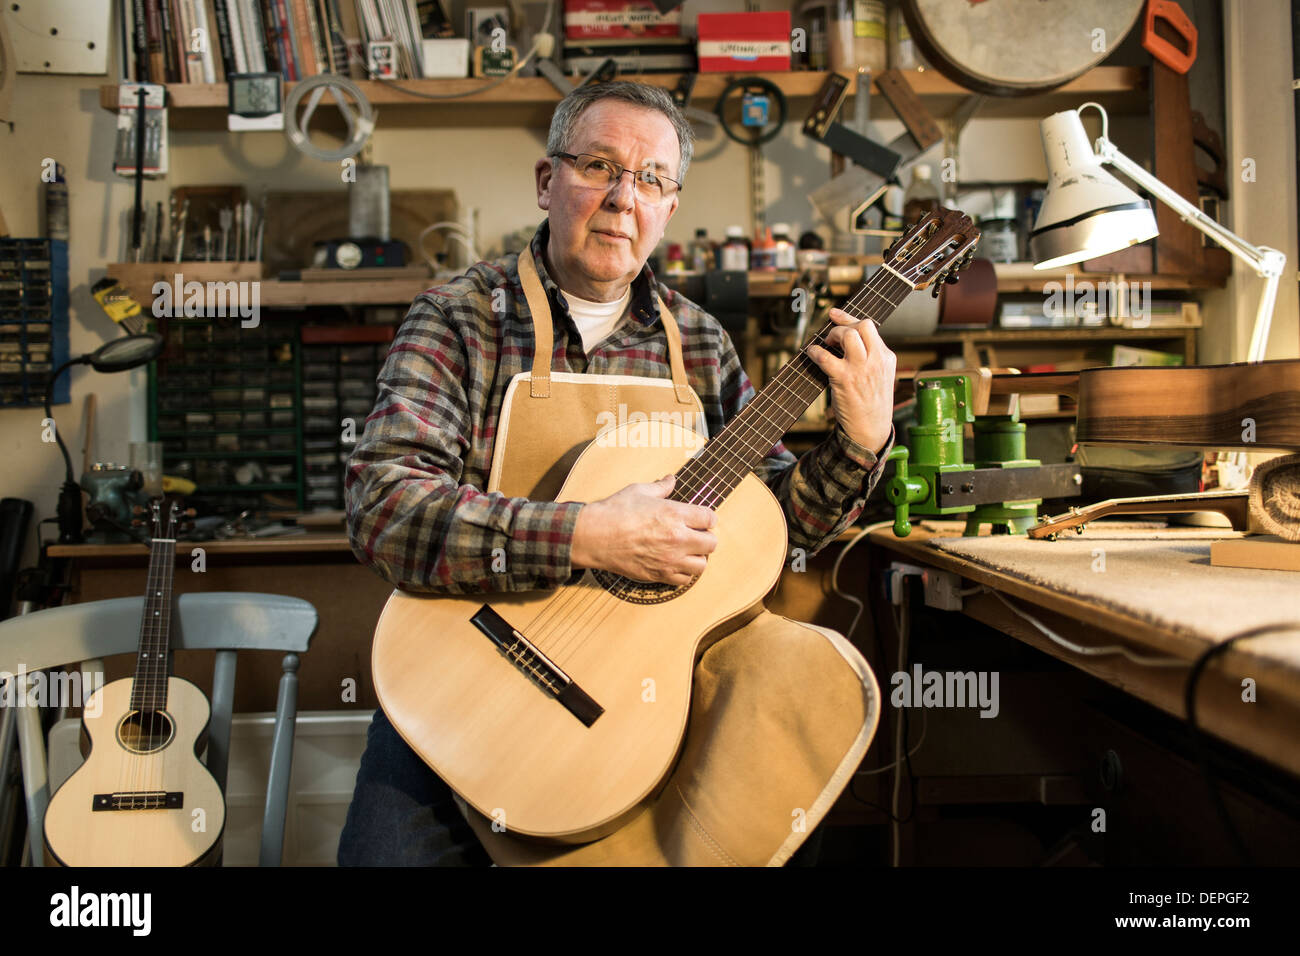 Guitar maker tuning and testing acoustic guitar in workshop, portrait - Stock Image